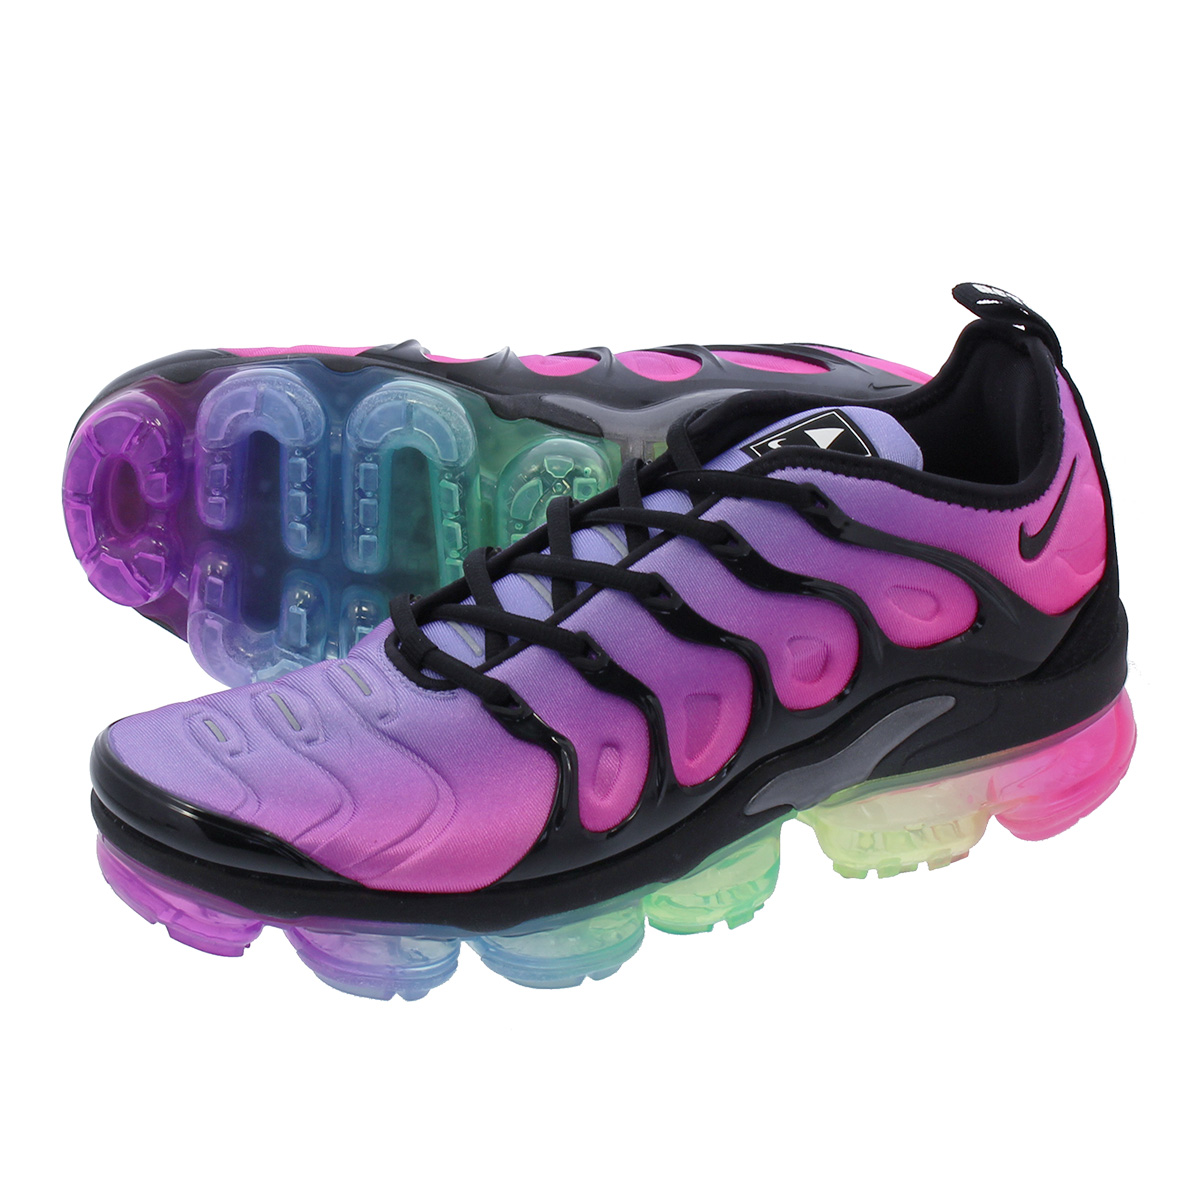 1002433dfa988 NIKE AIR VAPORMAX PLUS Nike vapor max plus PURPLE PULSE PINK BLAST MULTI  COLOR BLACK ar4791-500